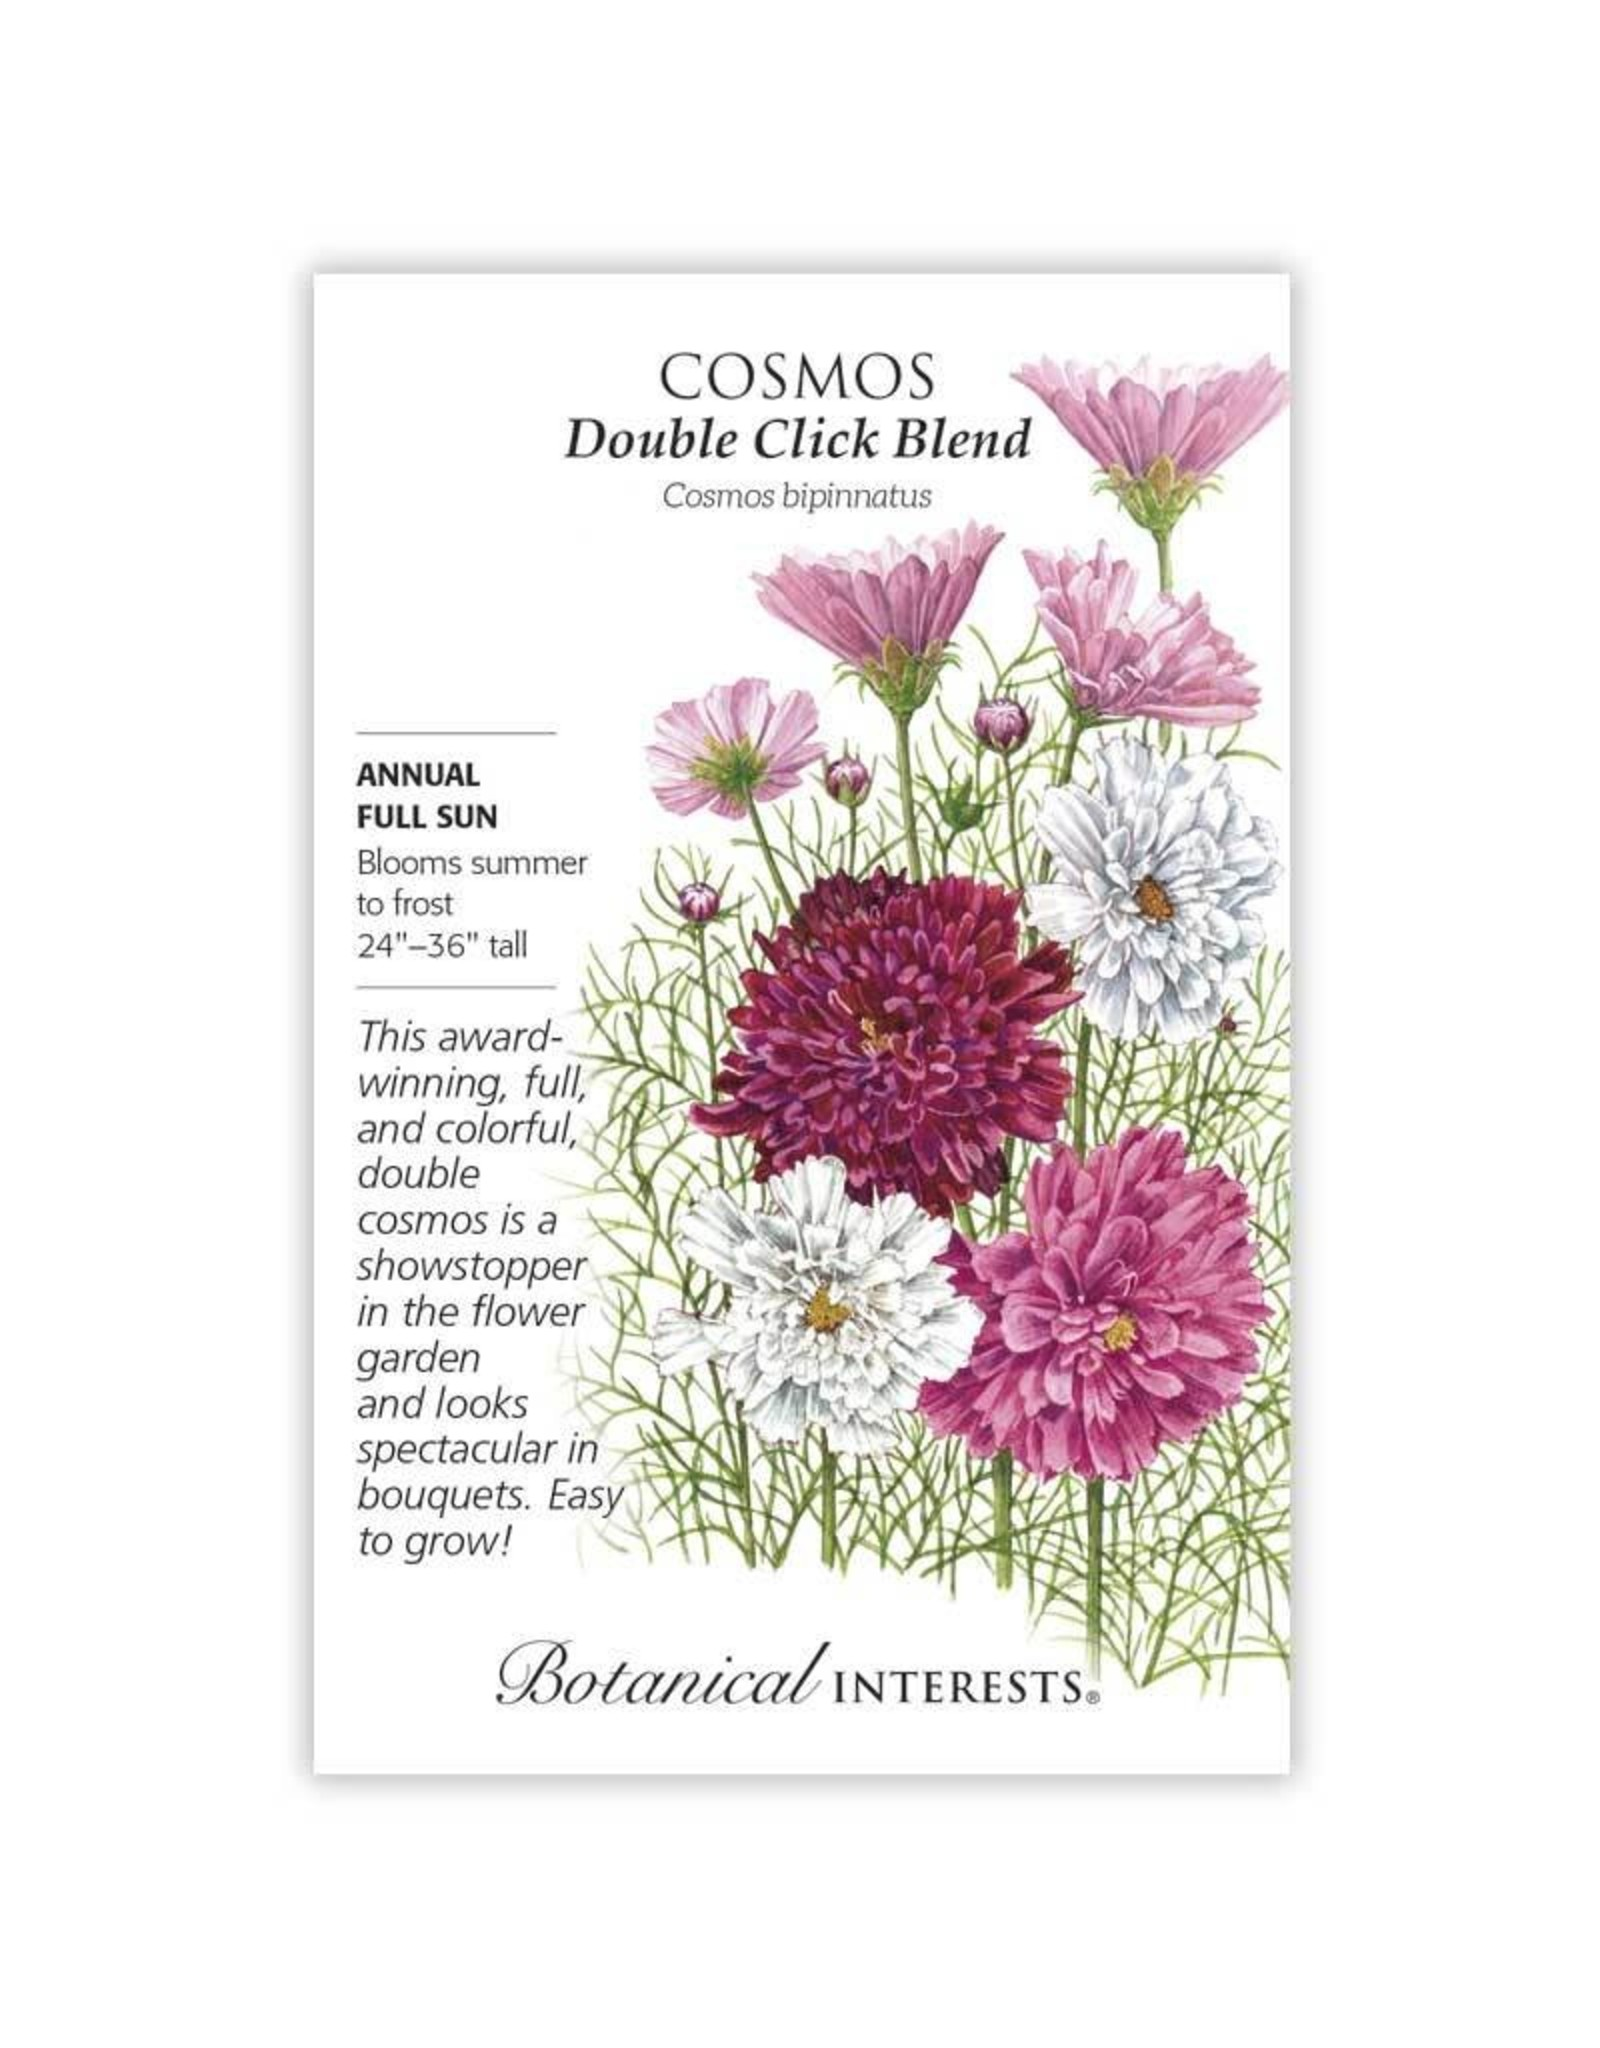 Seeds - Cosmos Double Click Blend